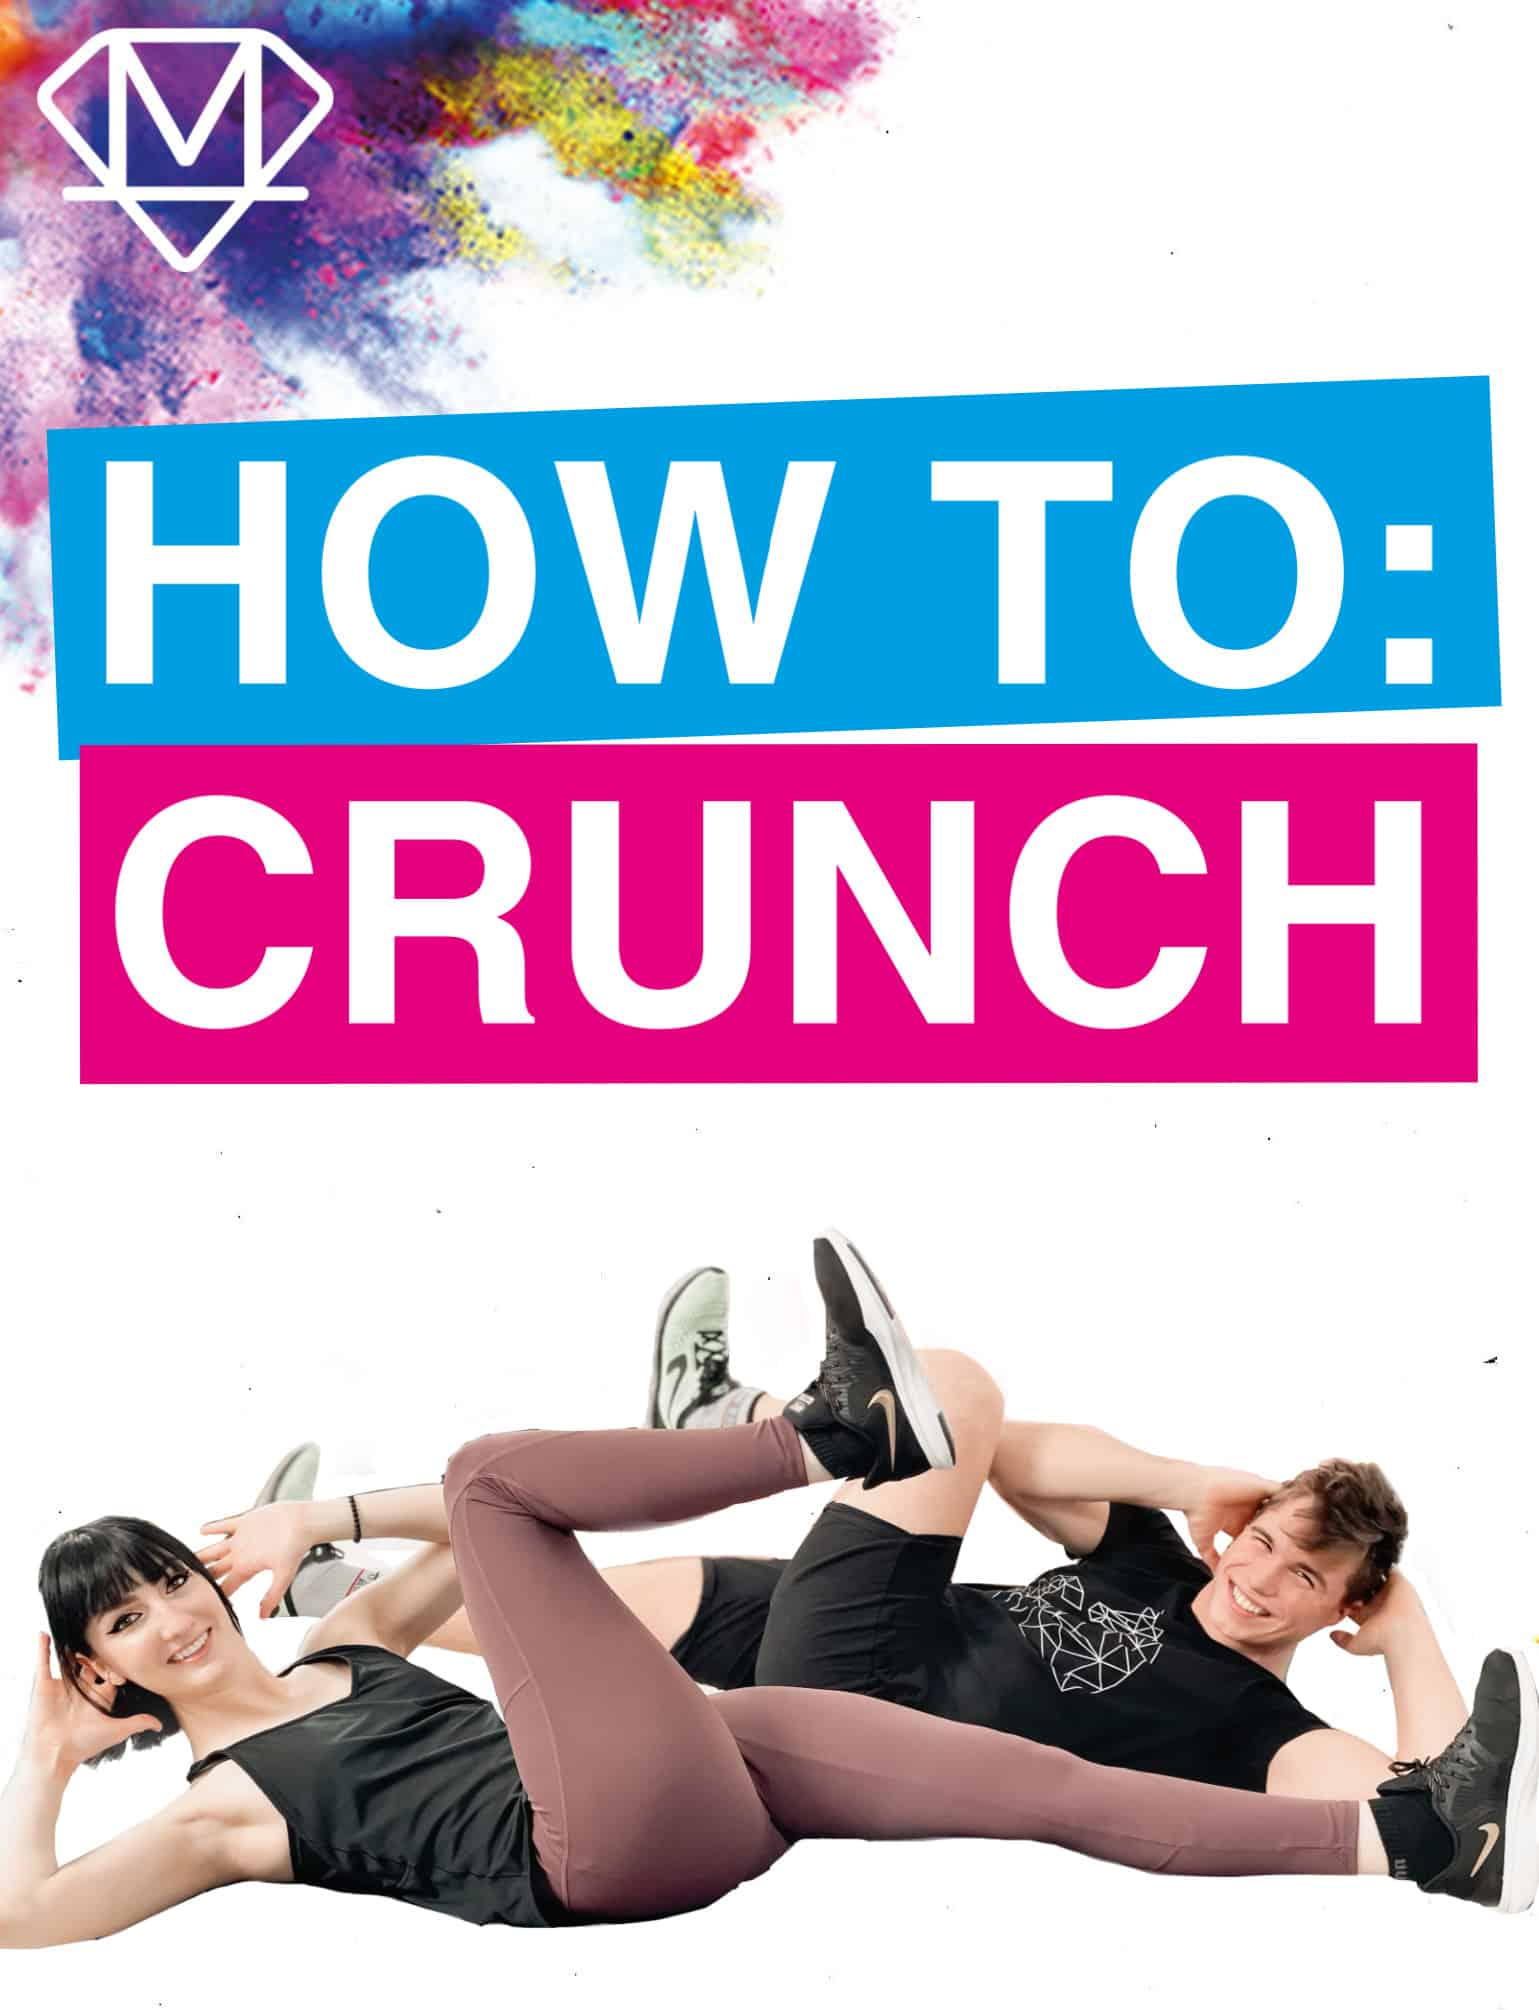 How to: Crunch